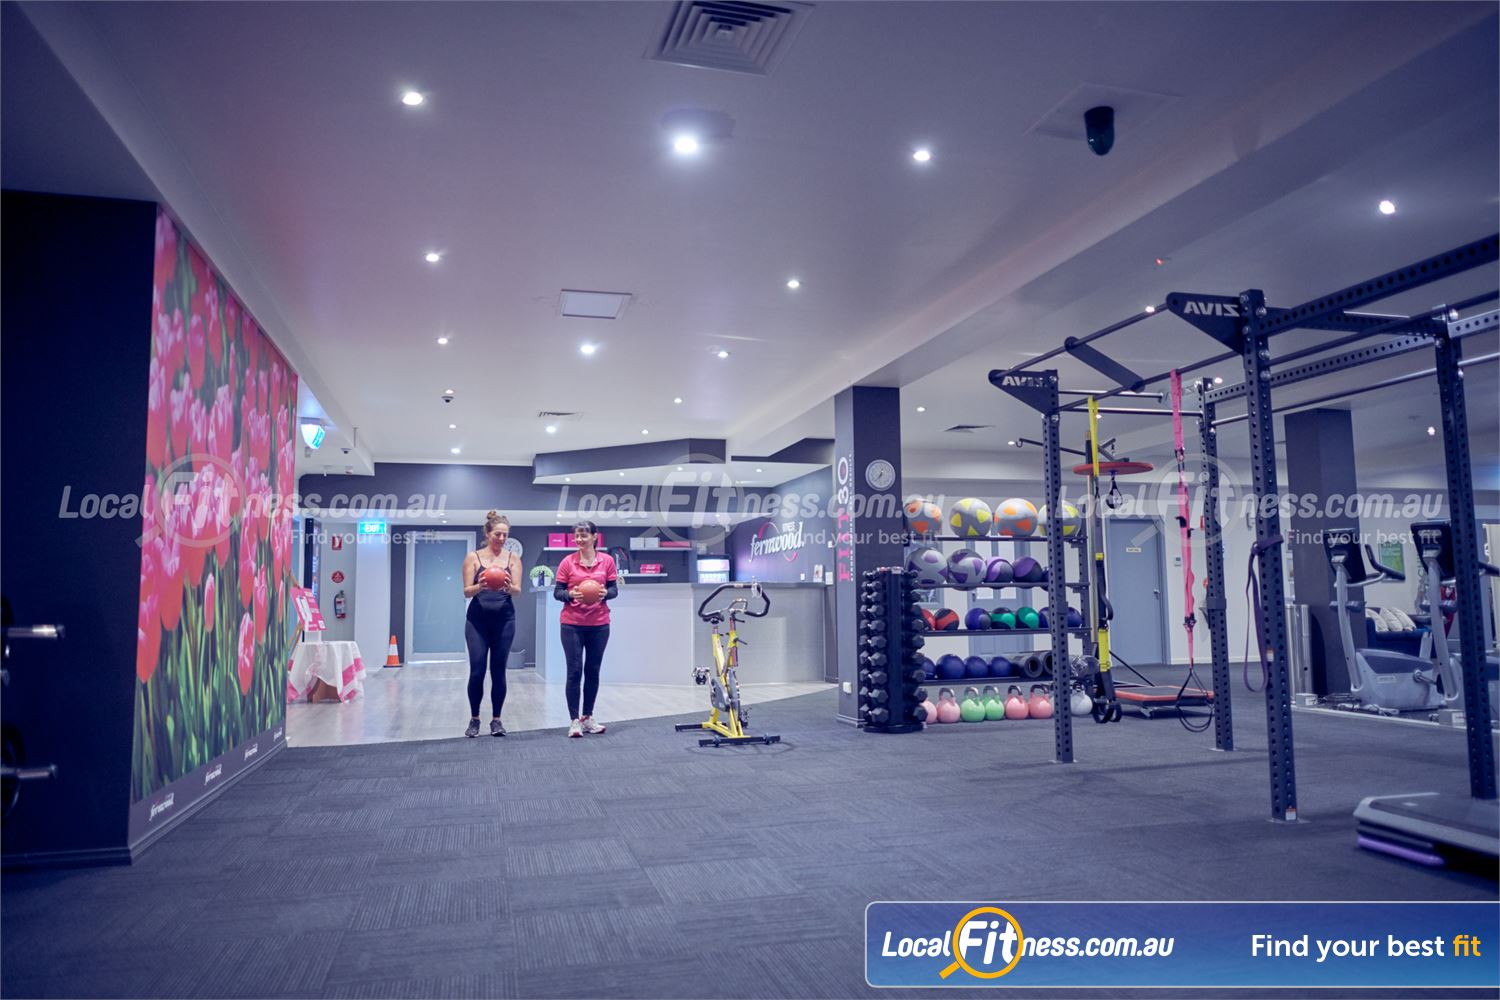 Fernwood Fitness Near Doncaster Our fully equipped facility provides 24 hour Bulleen gym access.